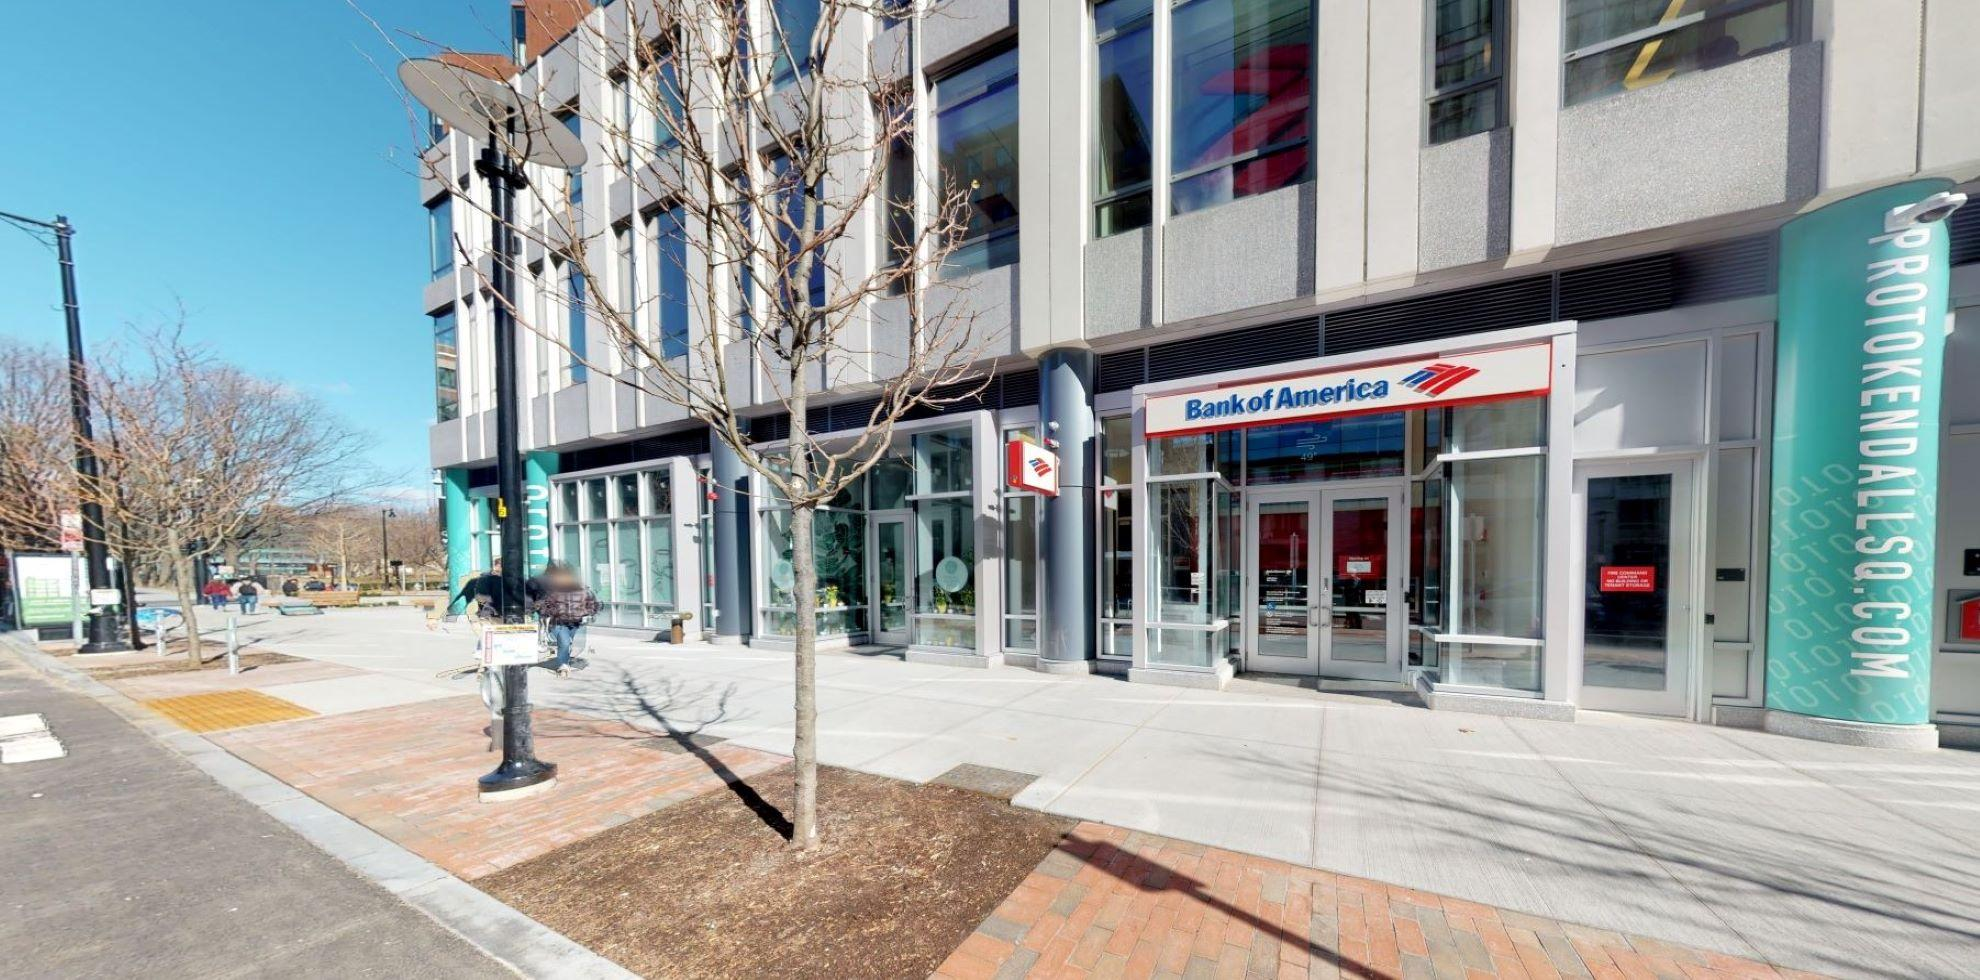 Bank of America financial center with walk-up ATM   92 Ames St, Cambridge, MA 02142